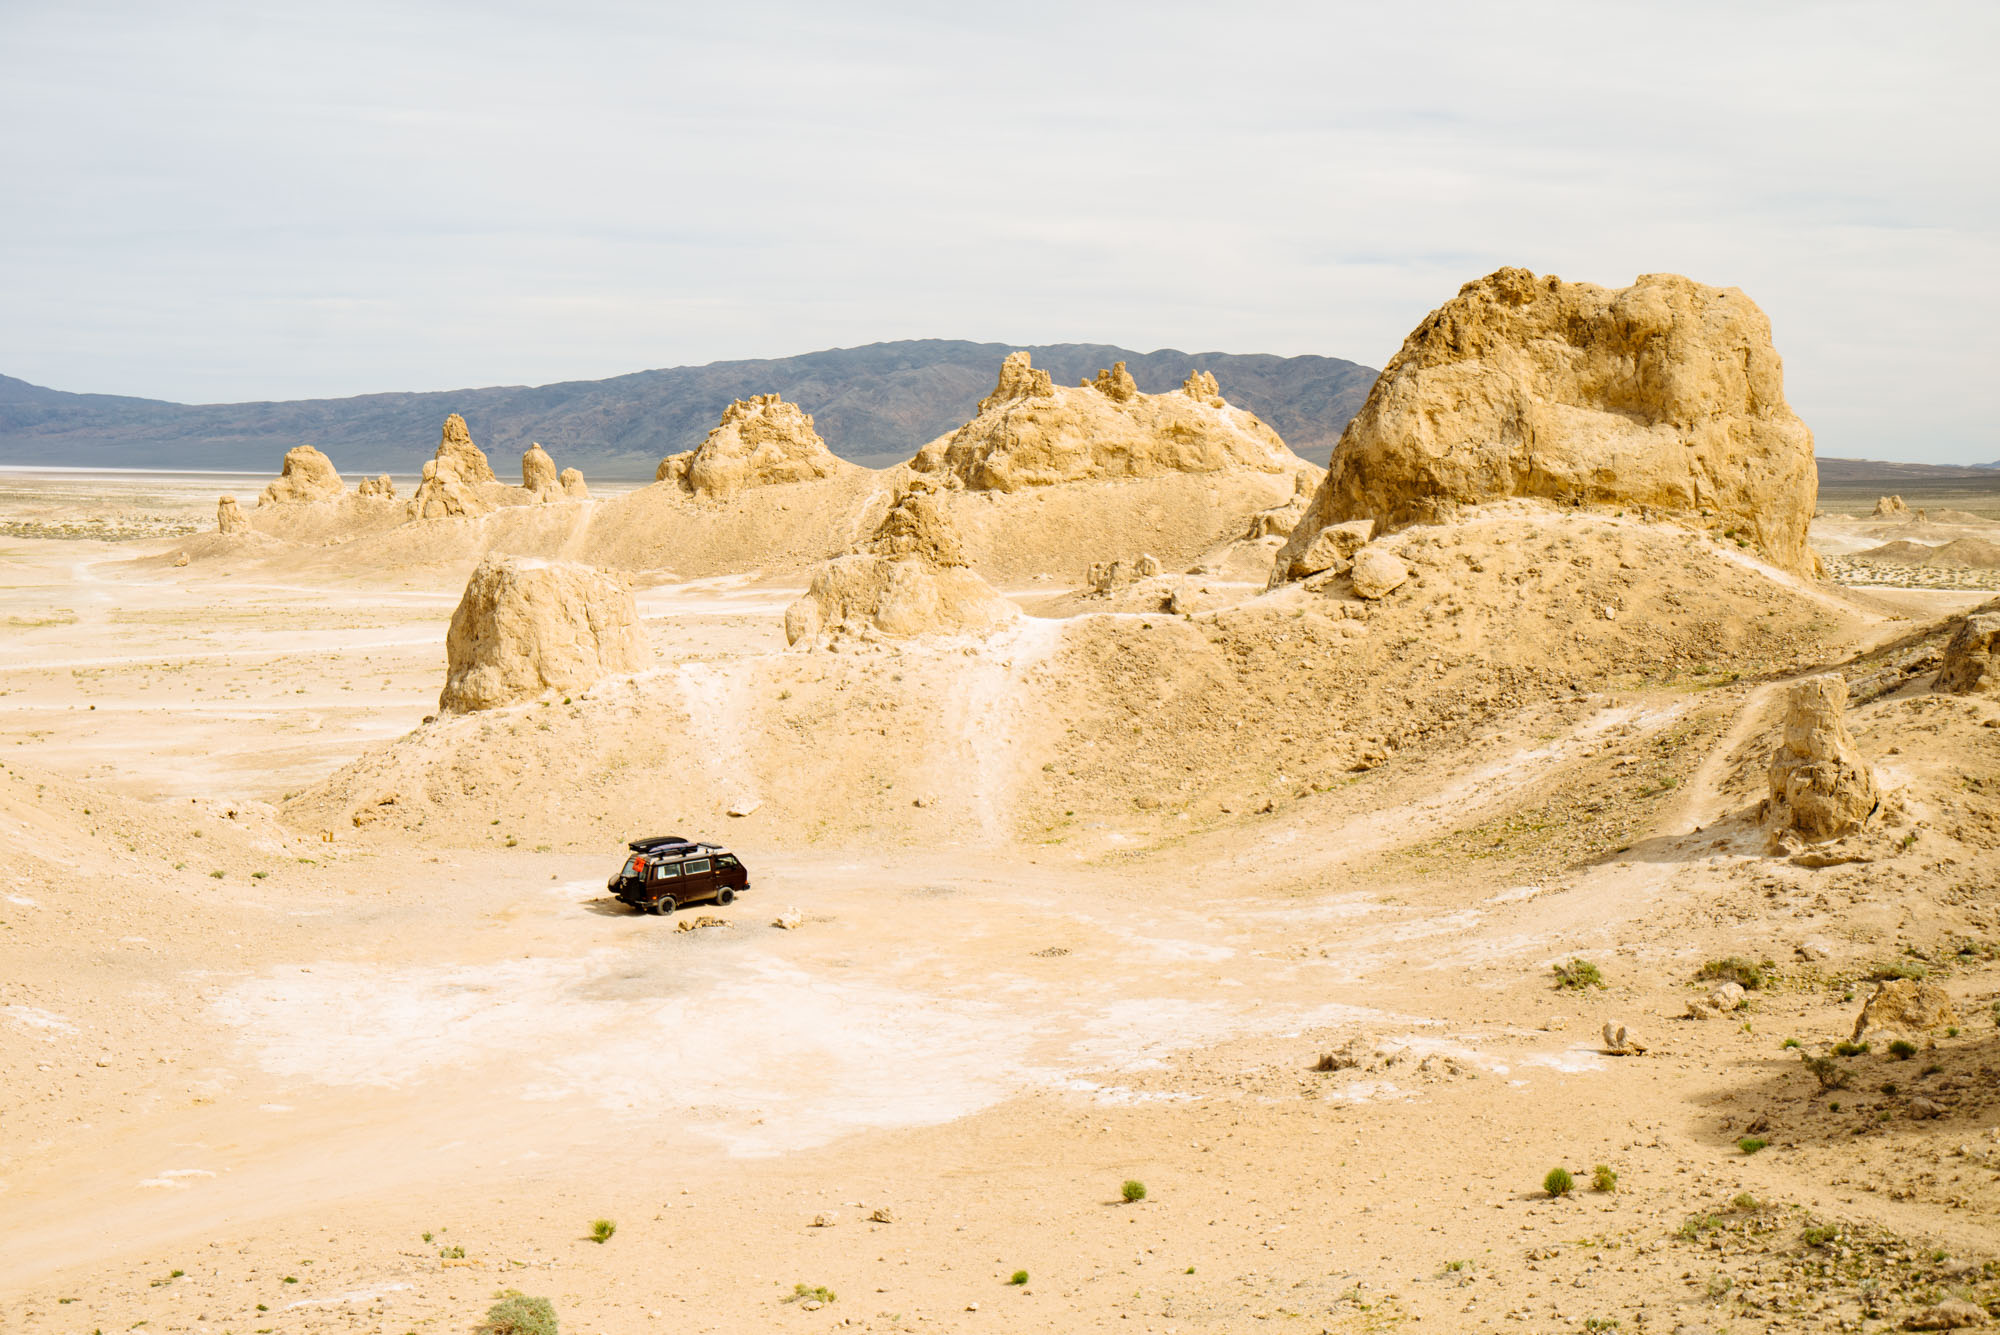 Stanley at Trona Pinnacles, CA. Fun Fact: Planet of the Apes was filmed here!